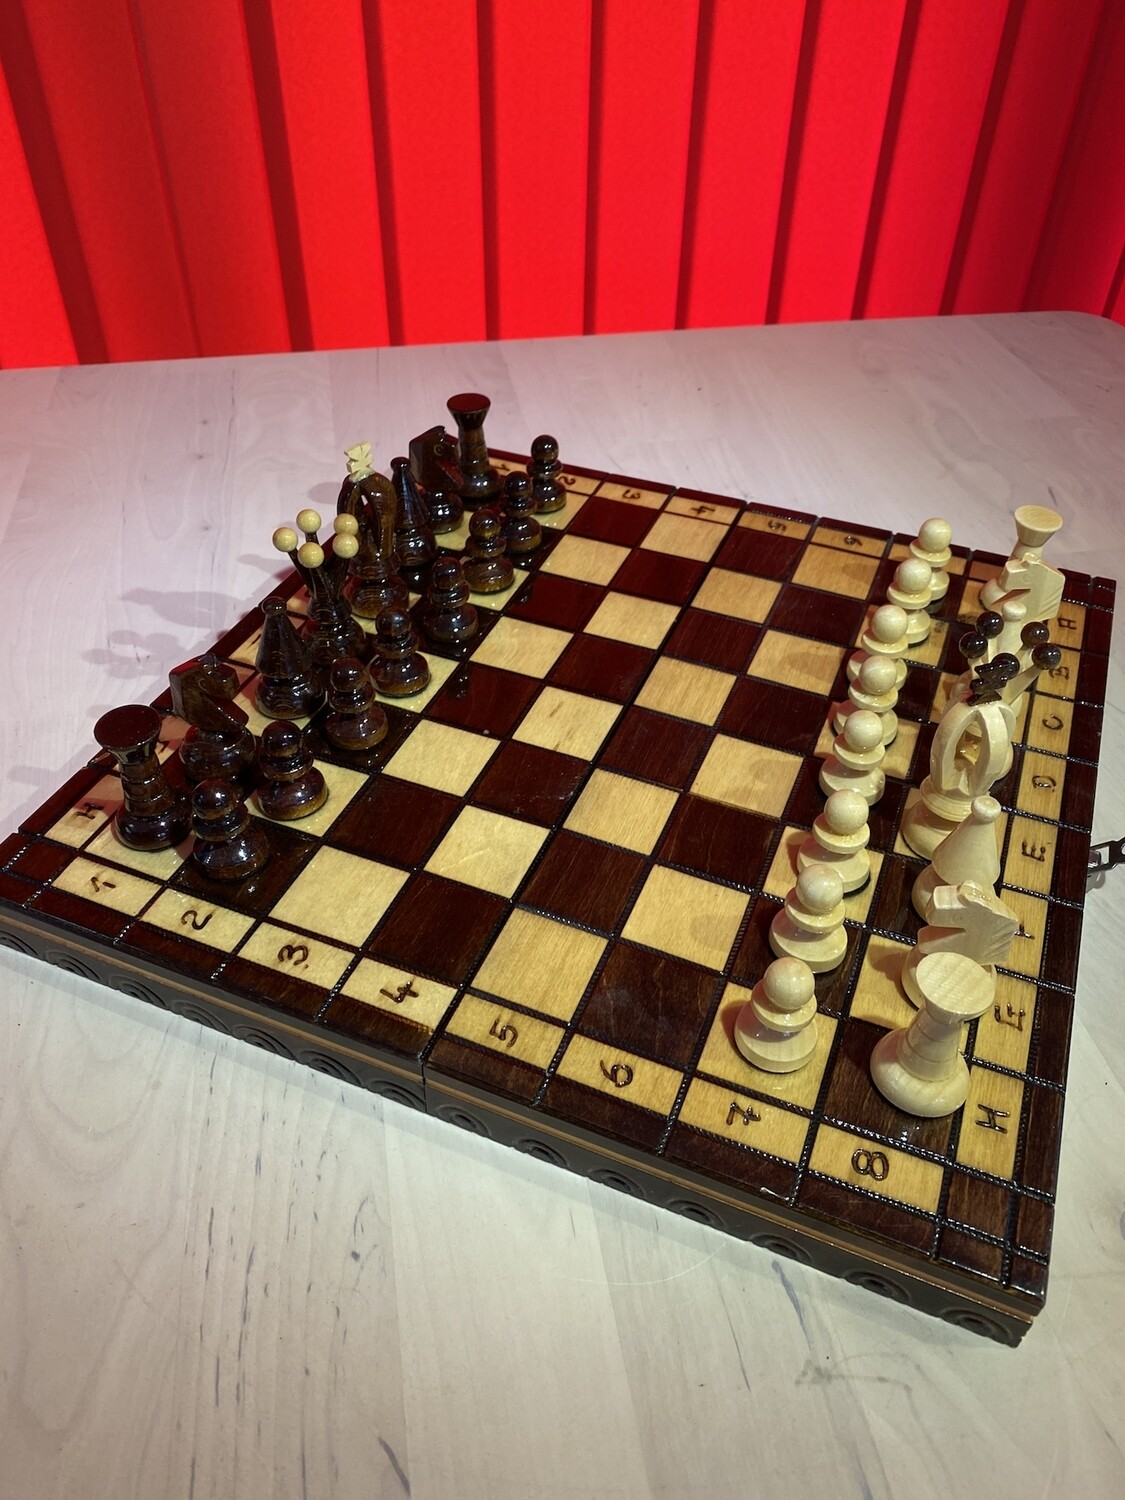 Hand Carved Chess Pieces and Board - modern